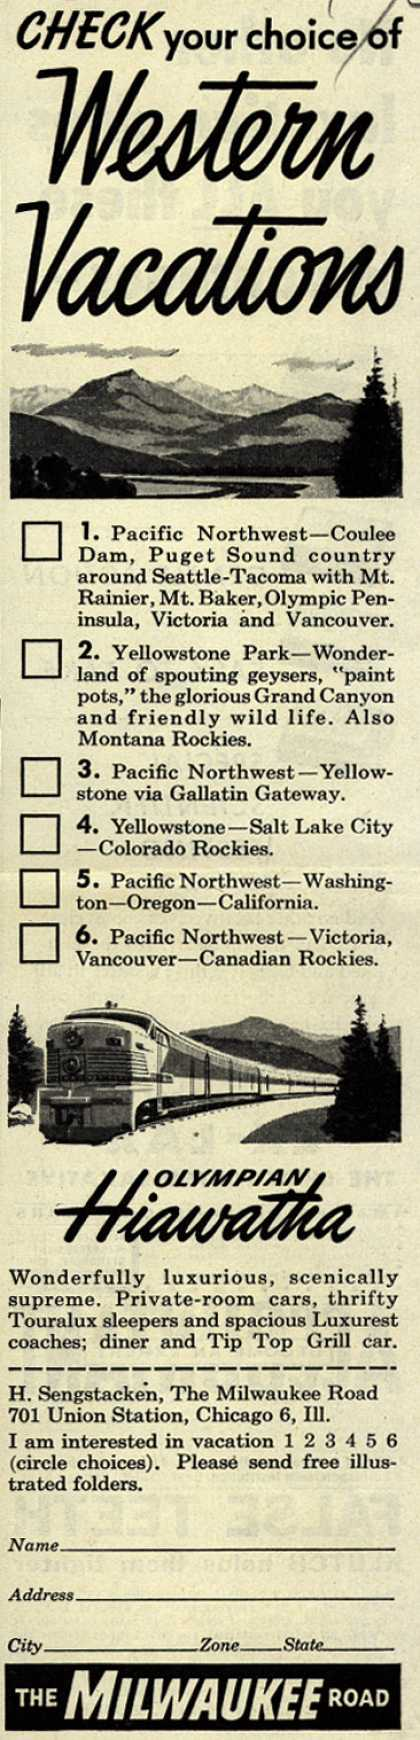 Milwaukee Road's Western vacations – Check your choice of Western Vacations (1951)